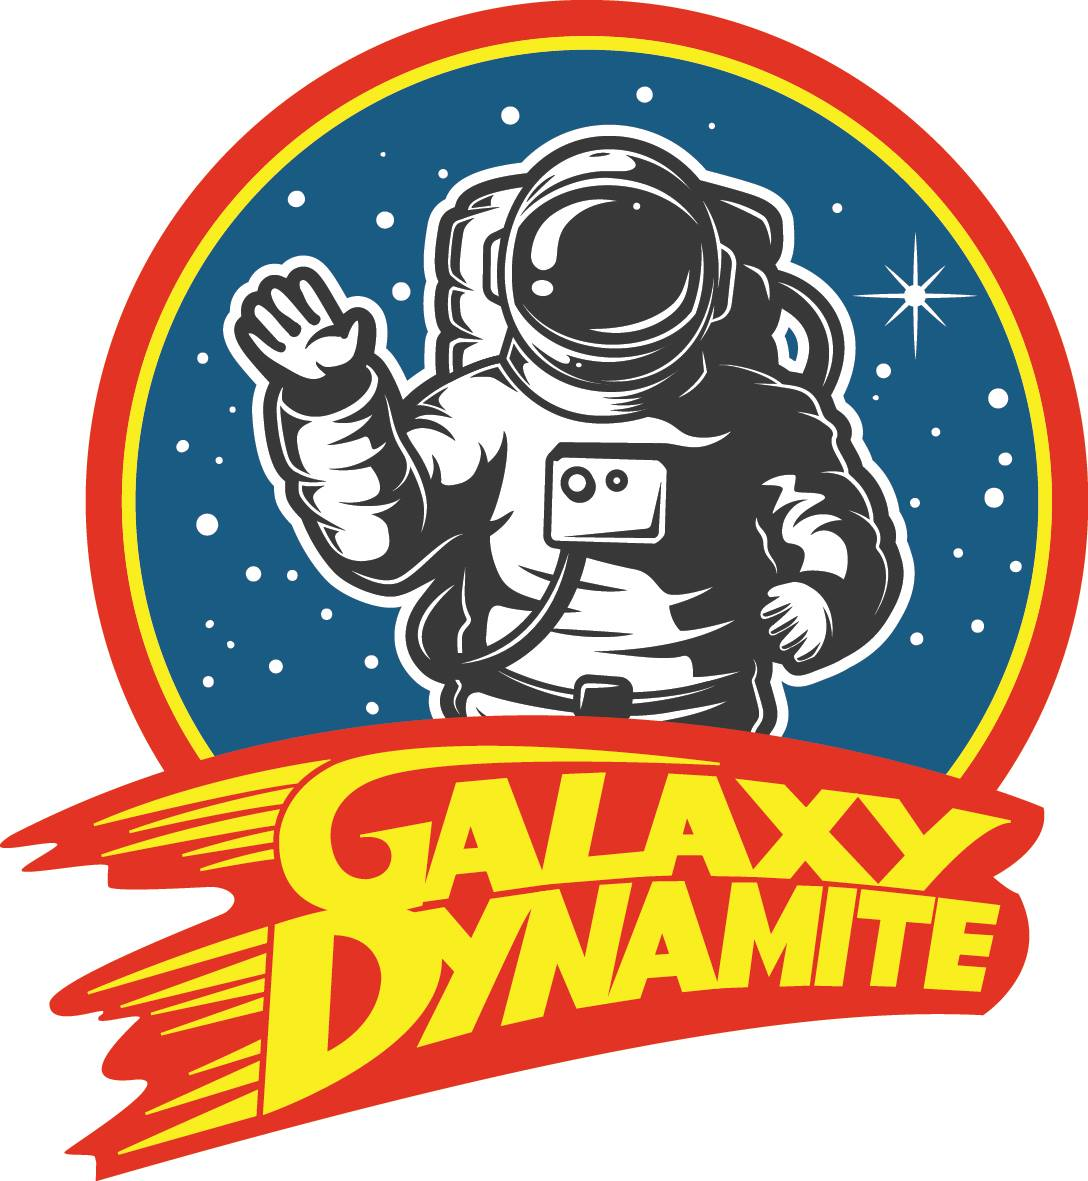 Exclusive: Galaxy Dynamite Interview about Upcoming Show Oct. 22, Starfire Festival & more